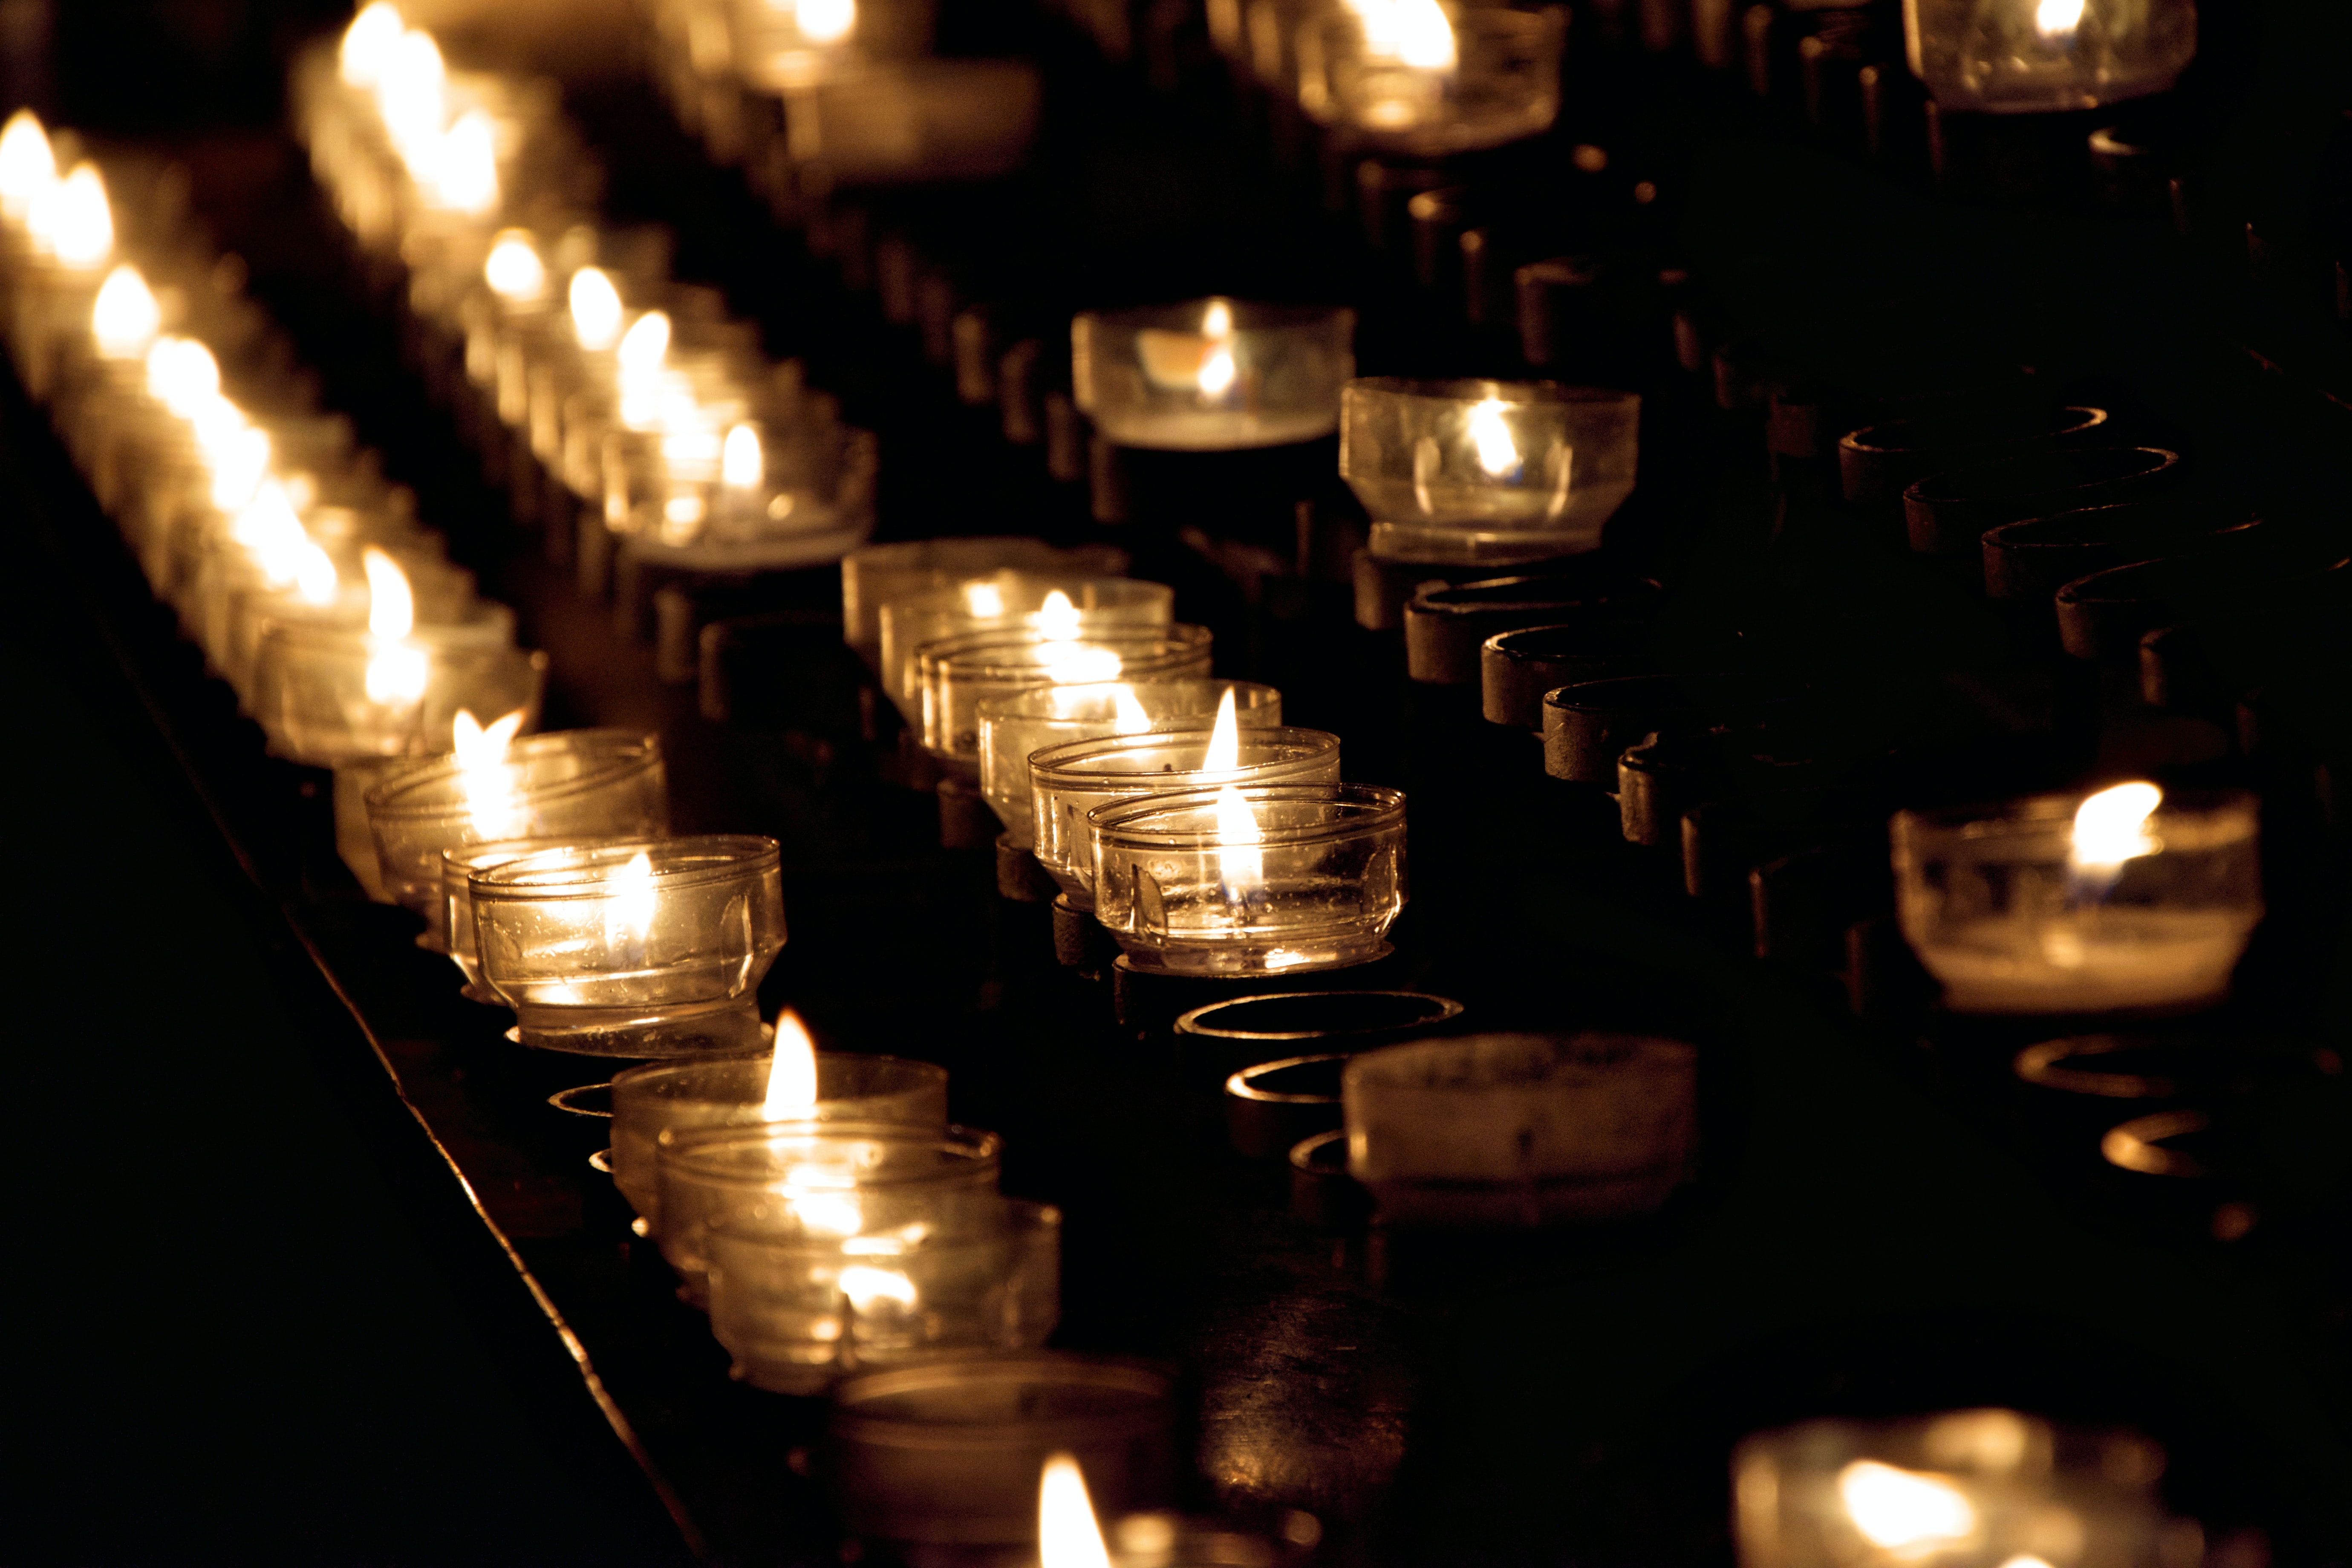 closeup photo of lighted tealight candles on rack